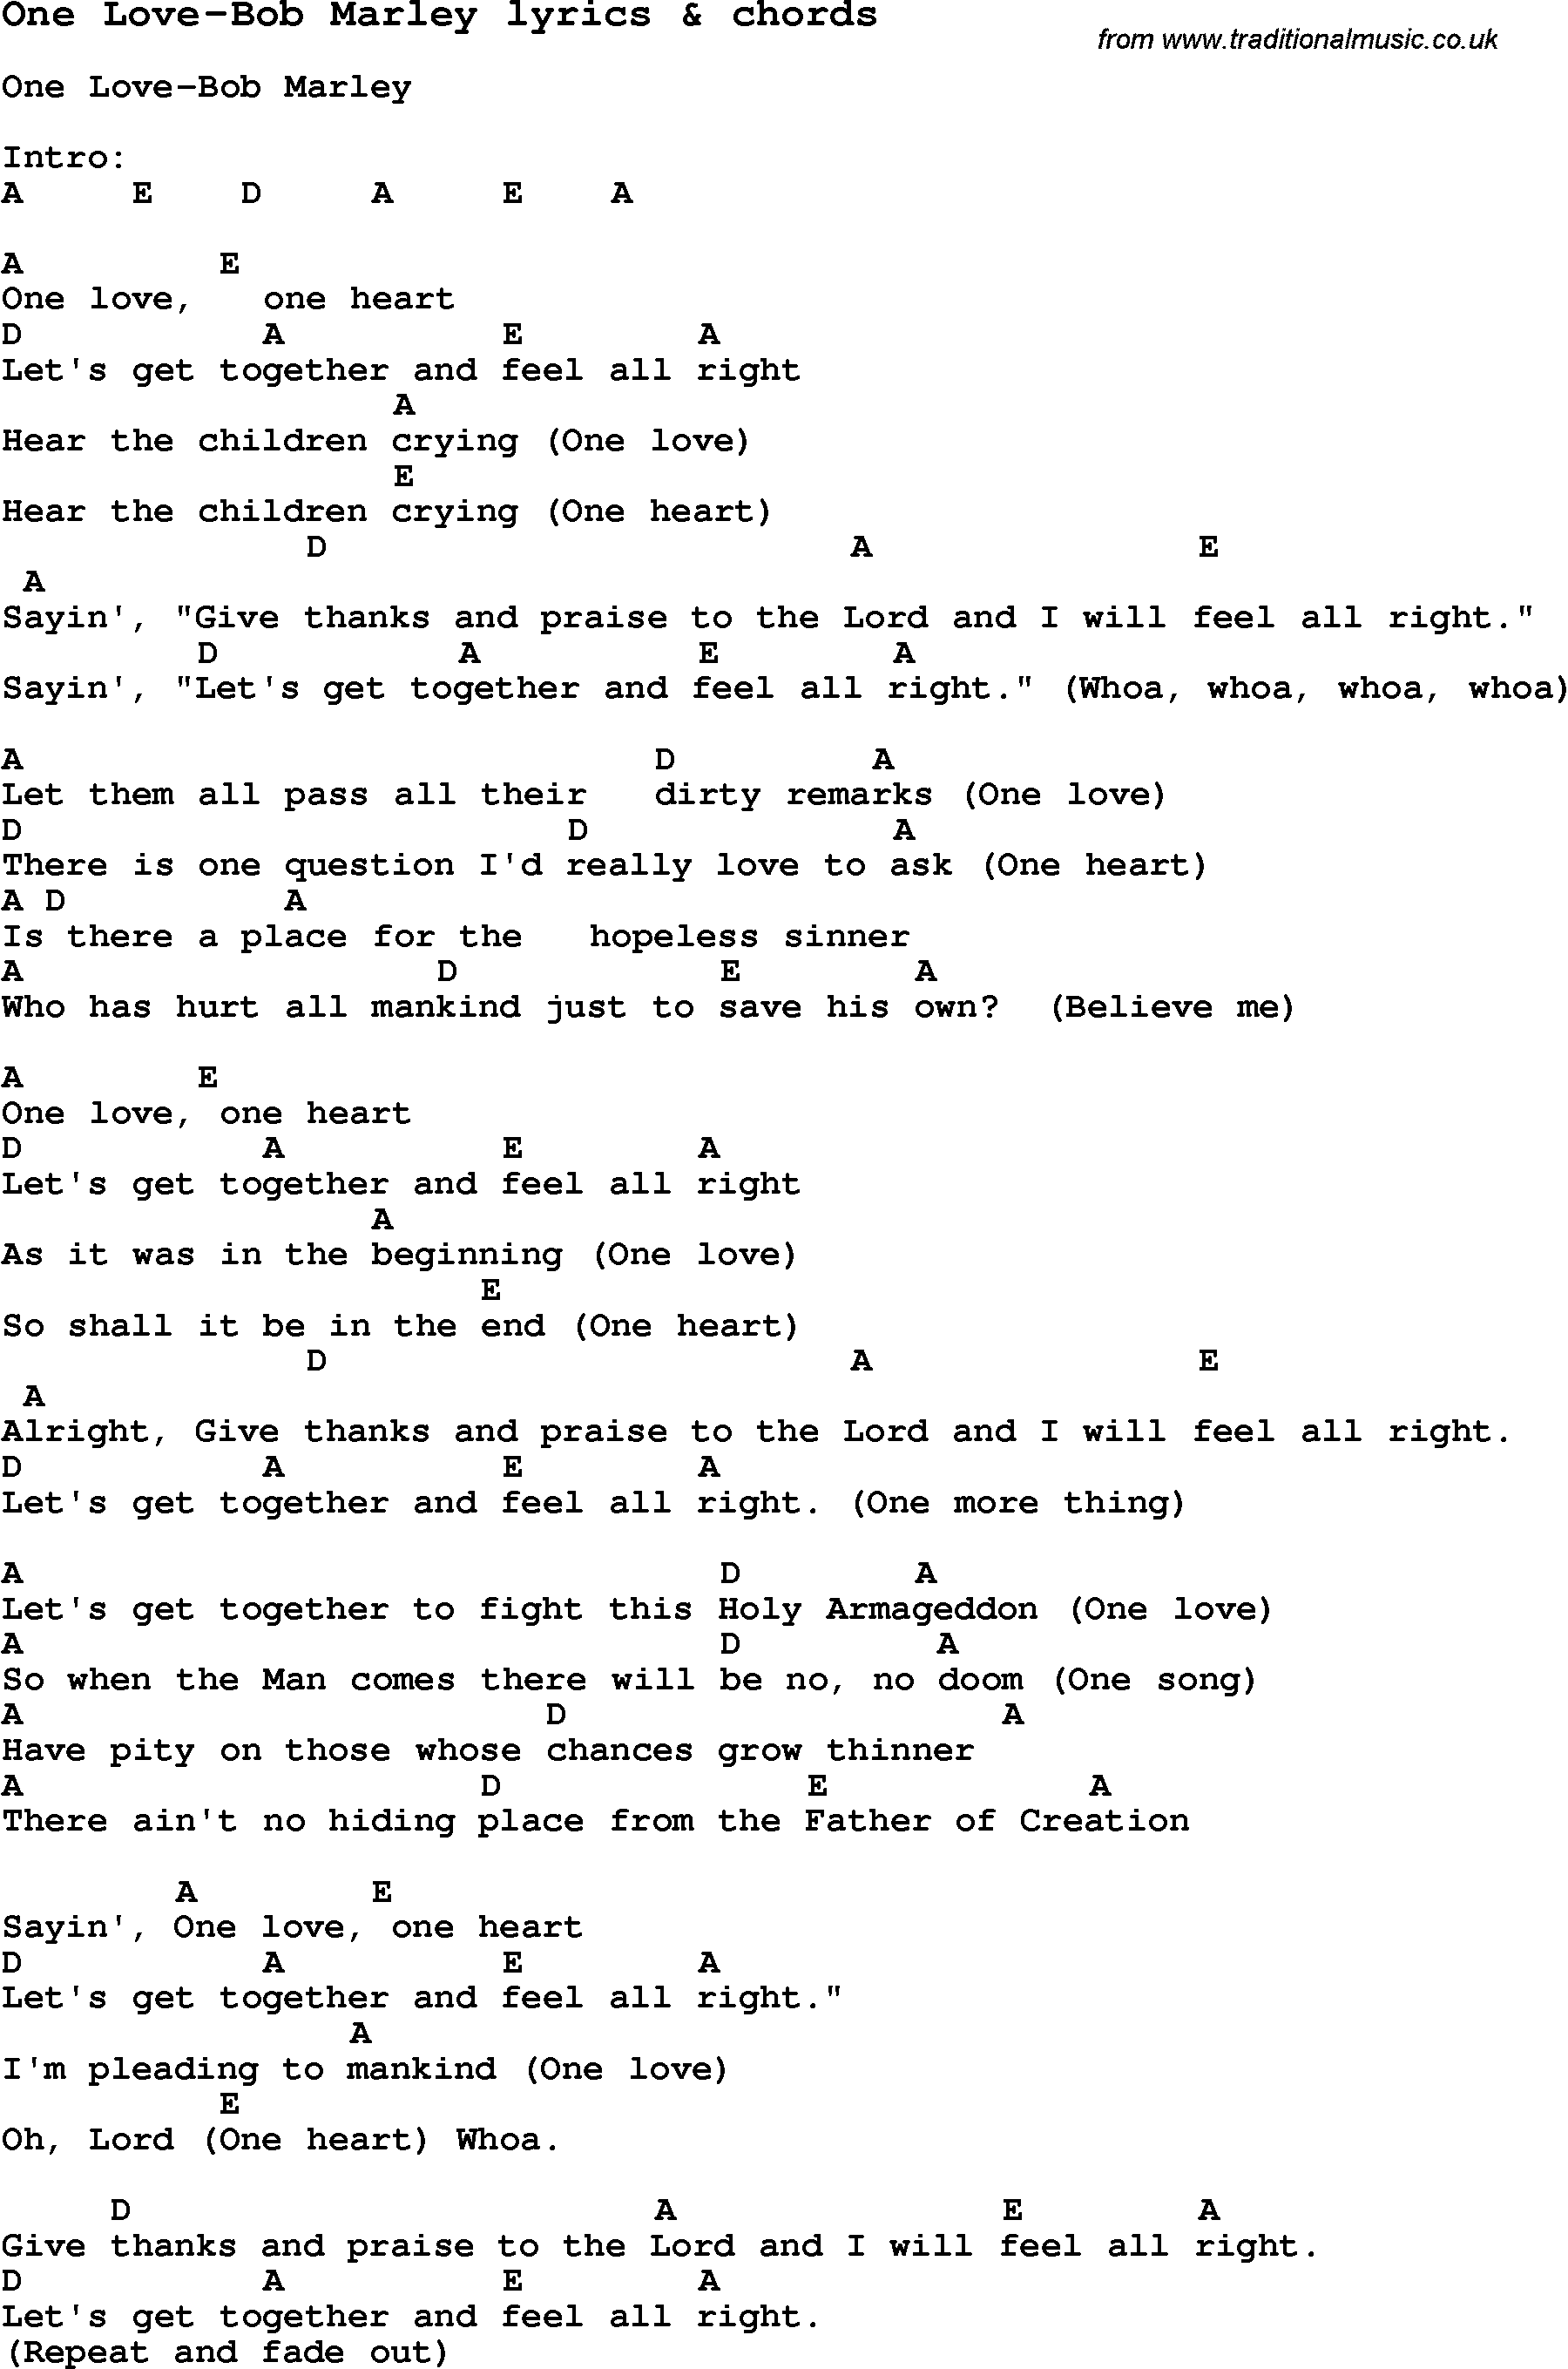 Is This Love Bob Marley Lyrics love song lyrics for:one love-bob ...